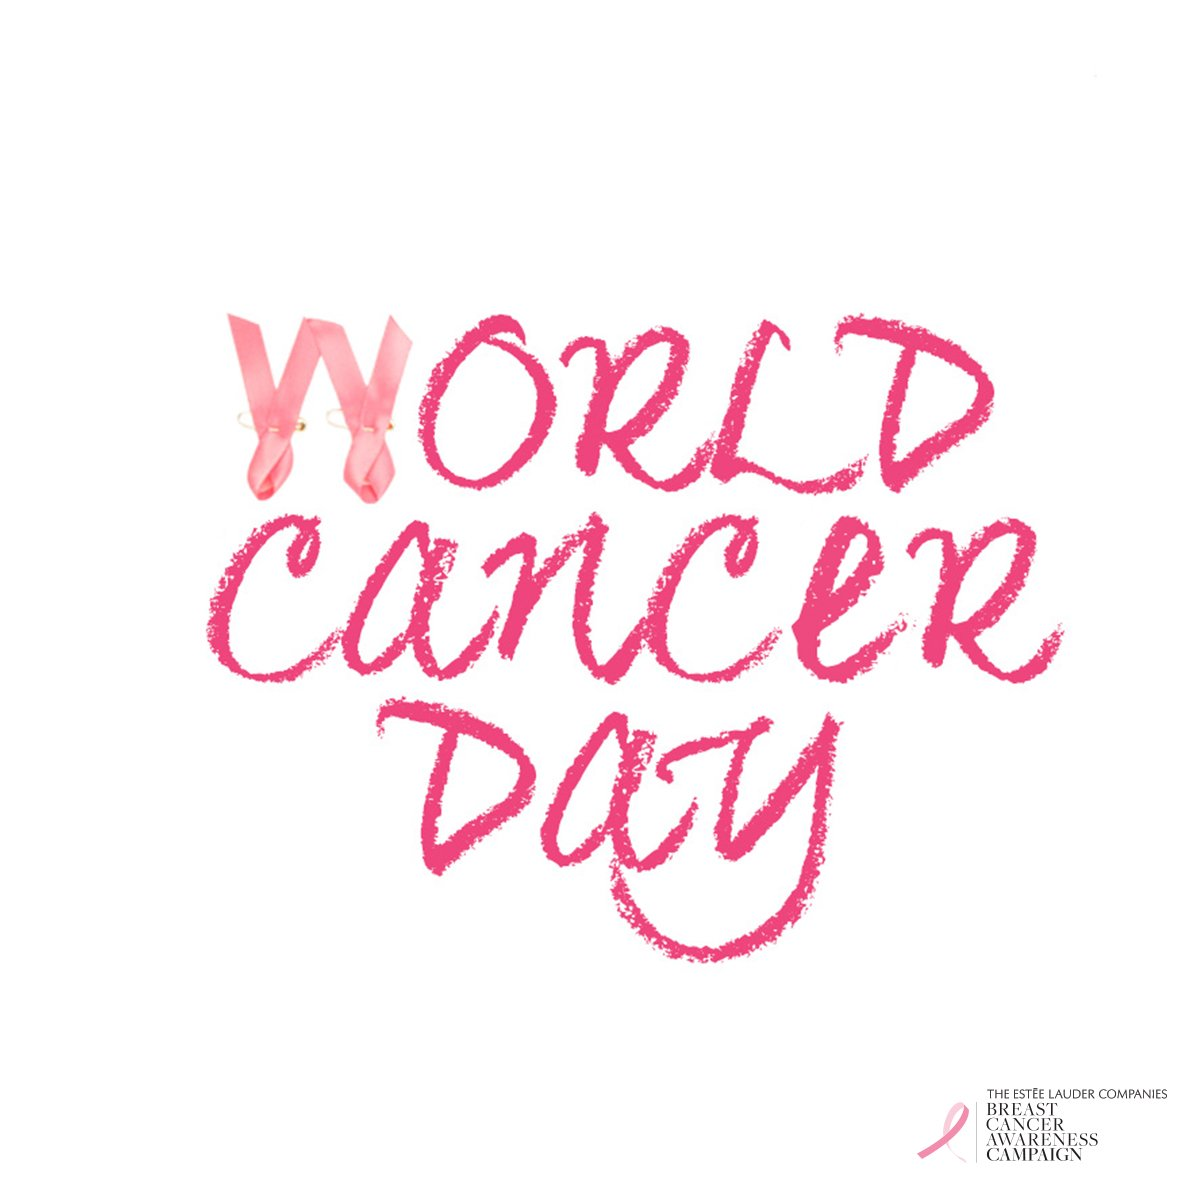 This #WorldCancerDay, we're supporting those touched by breast cancer. Visit our Instagram @BCAcampaign #BCAstrength https://t.co/W1UBpCs2SF